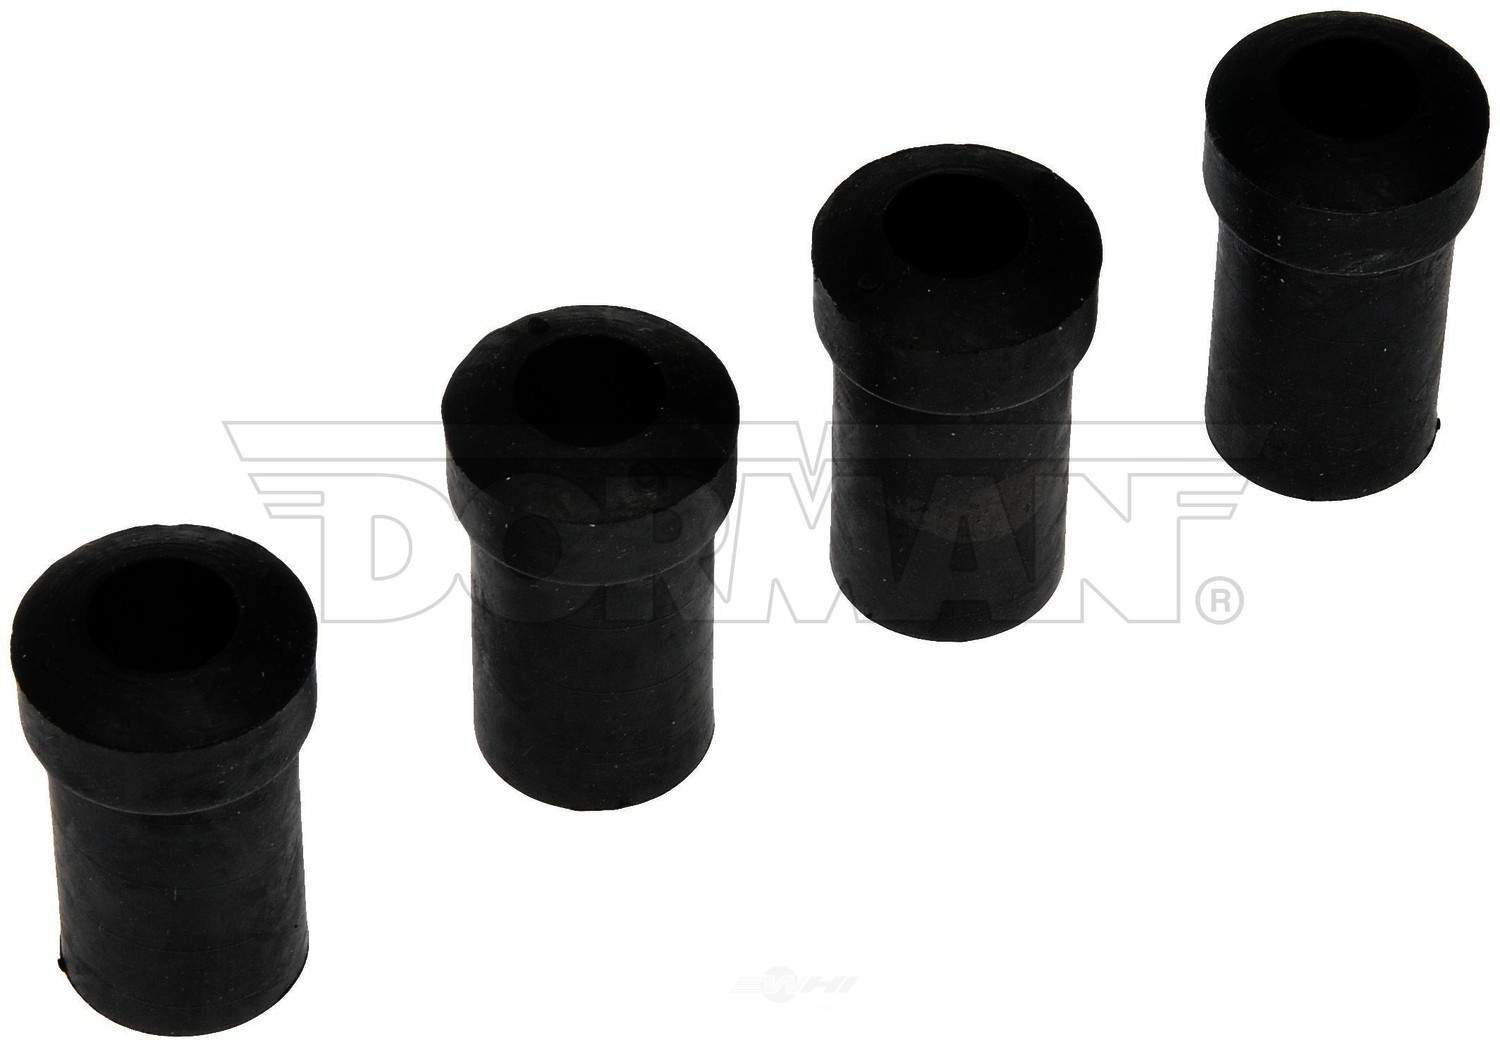 DORMAN OE SOLUTIONS - Leaf Spring Shackle Bushing (Rear) - DRE 535-930